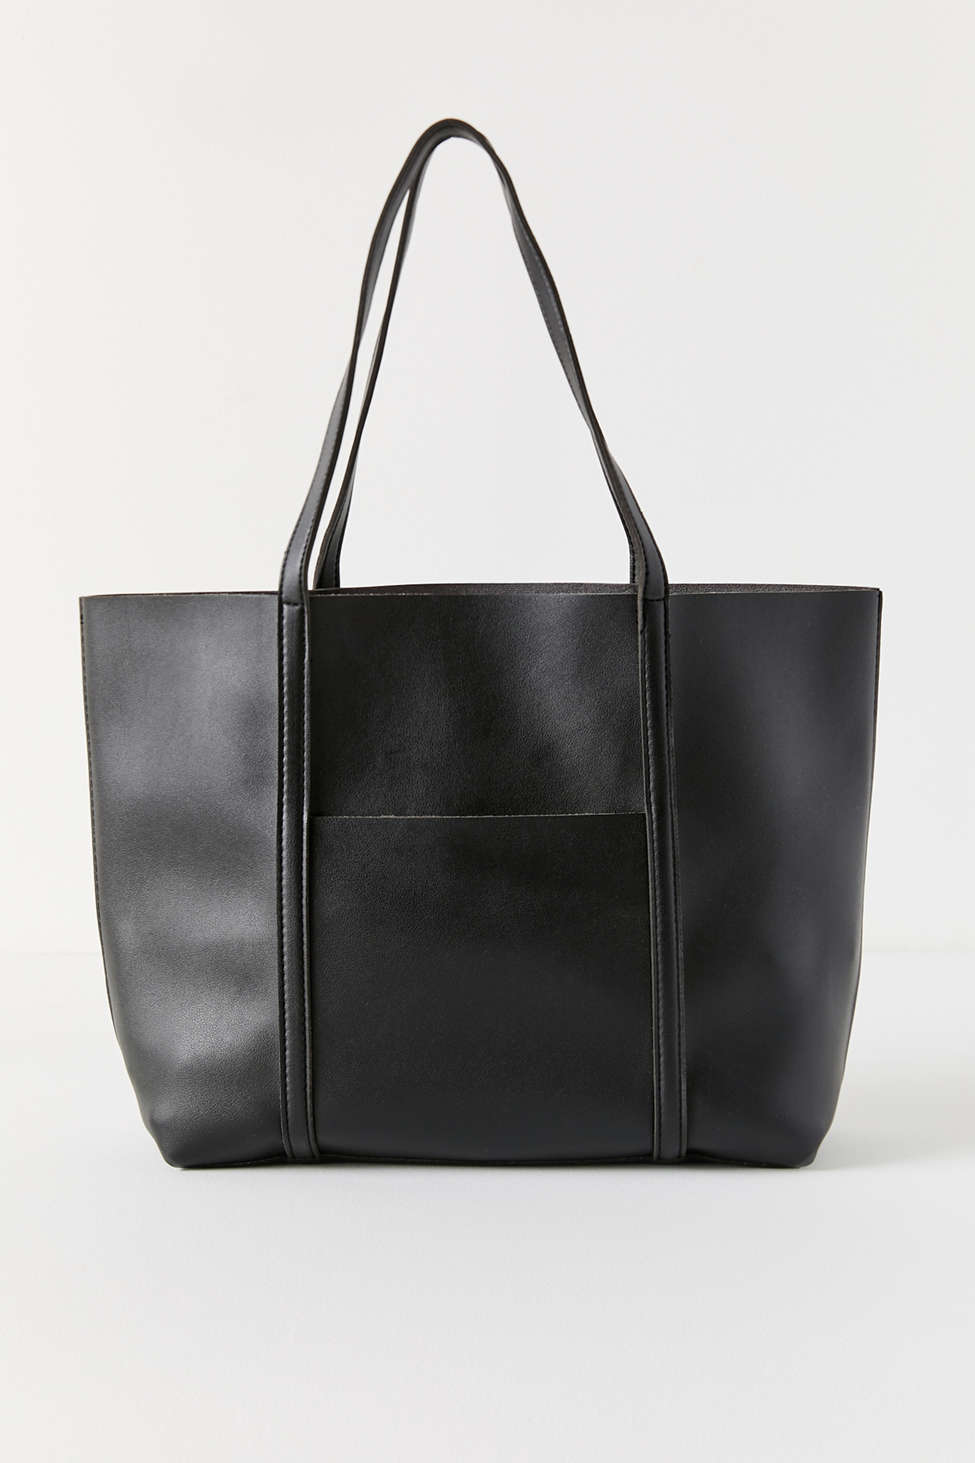 Danielle Carry All Tote Bag by Urban Outfitters